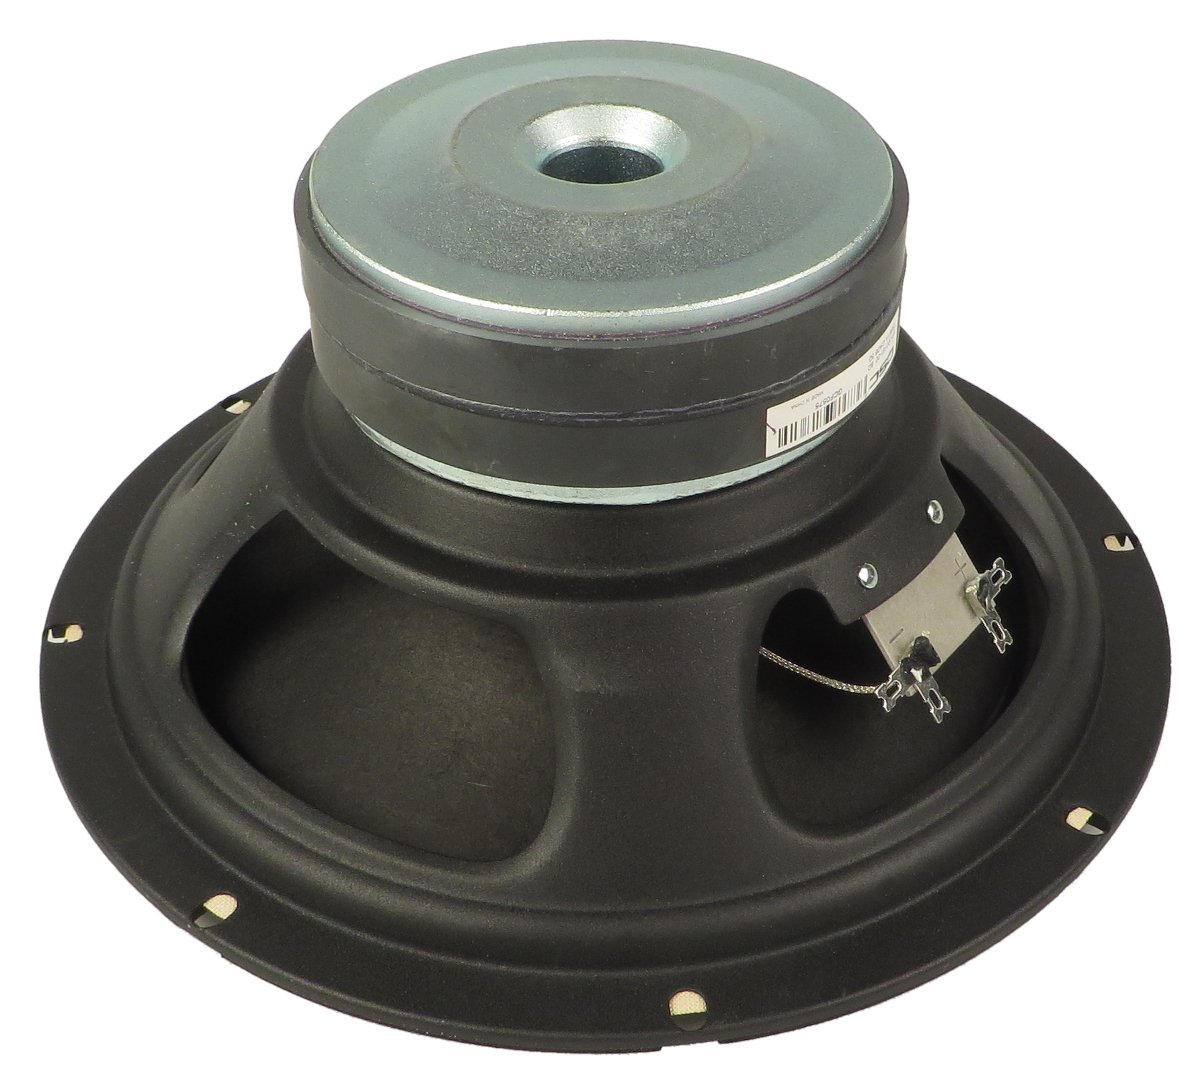 10 Inch Celestion Woofer for K10